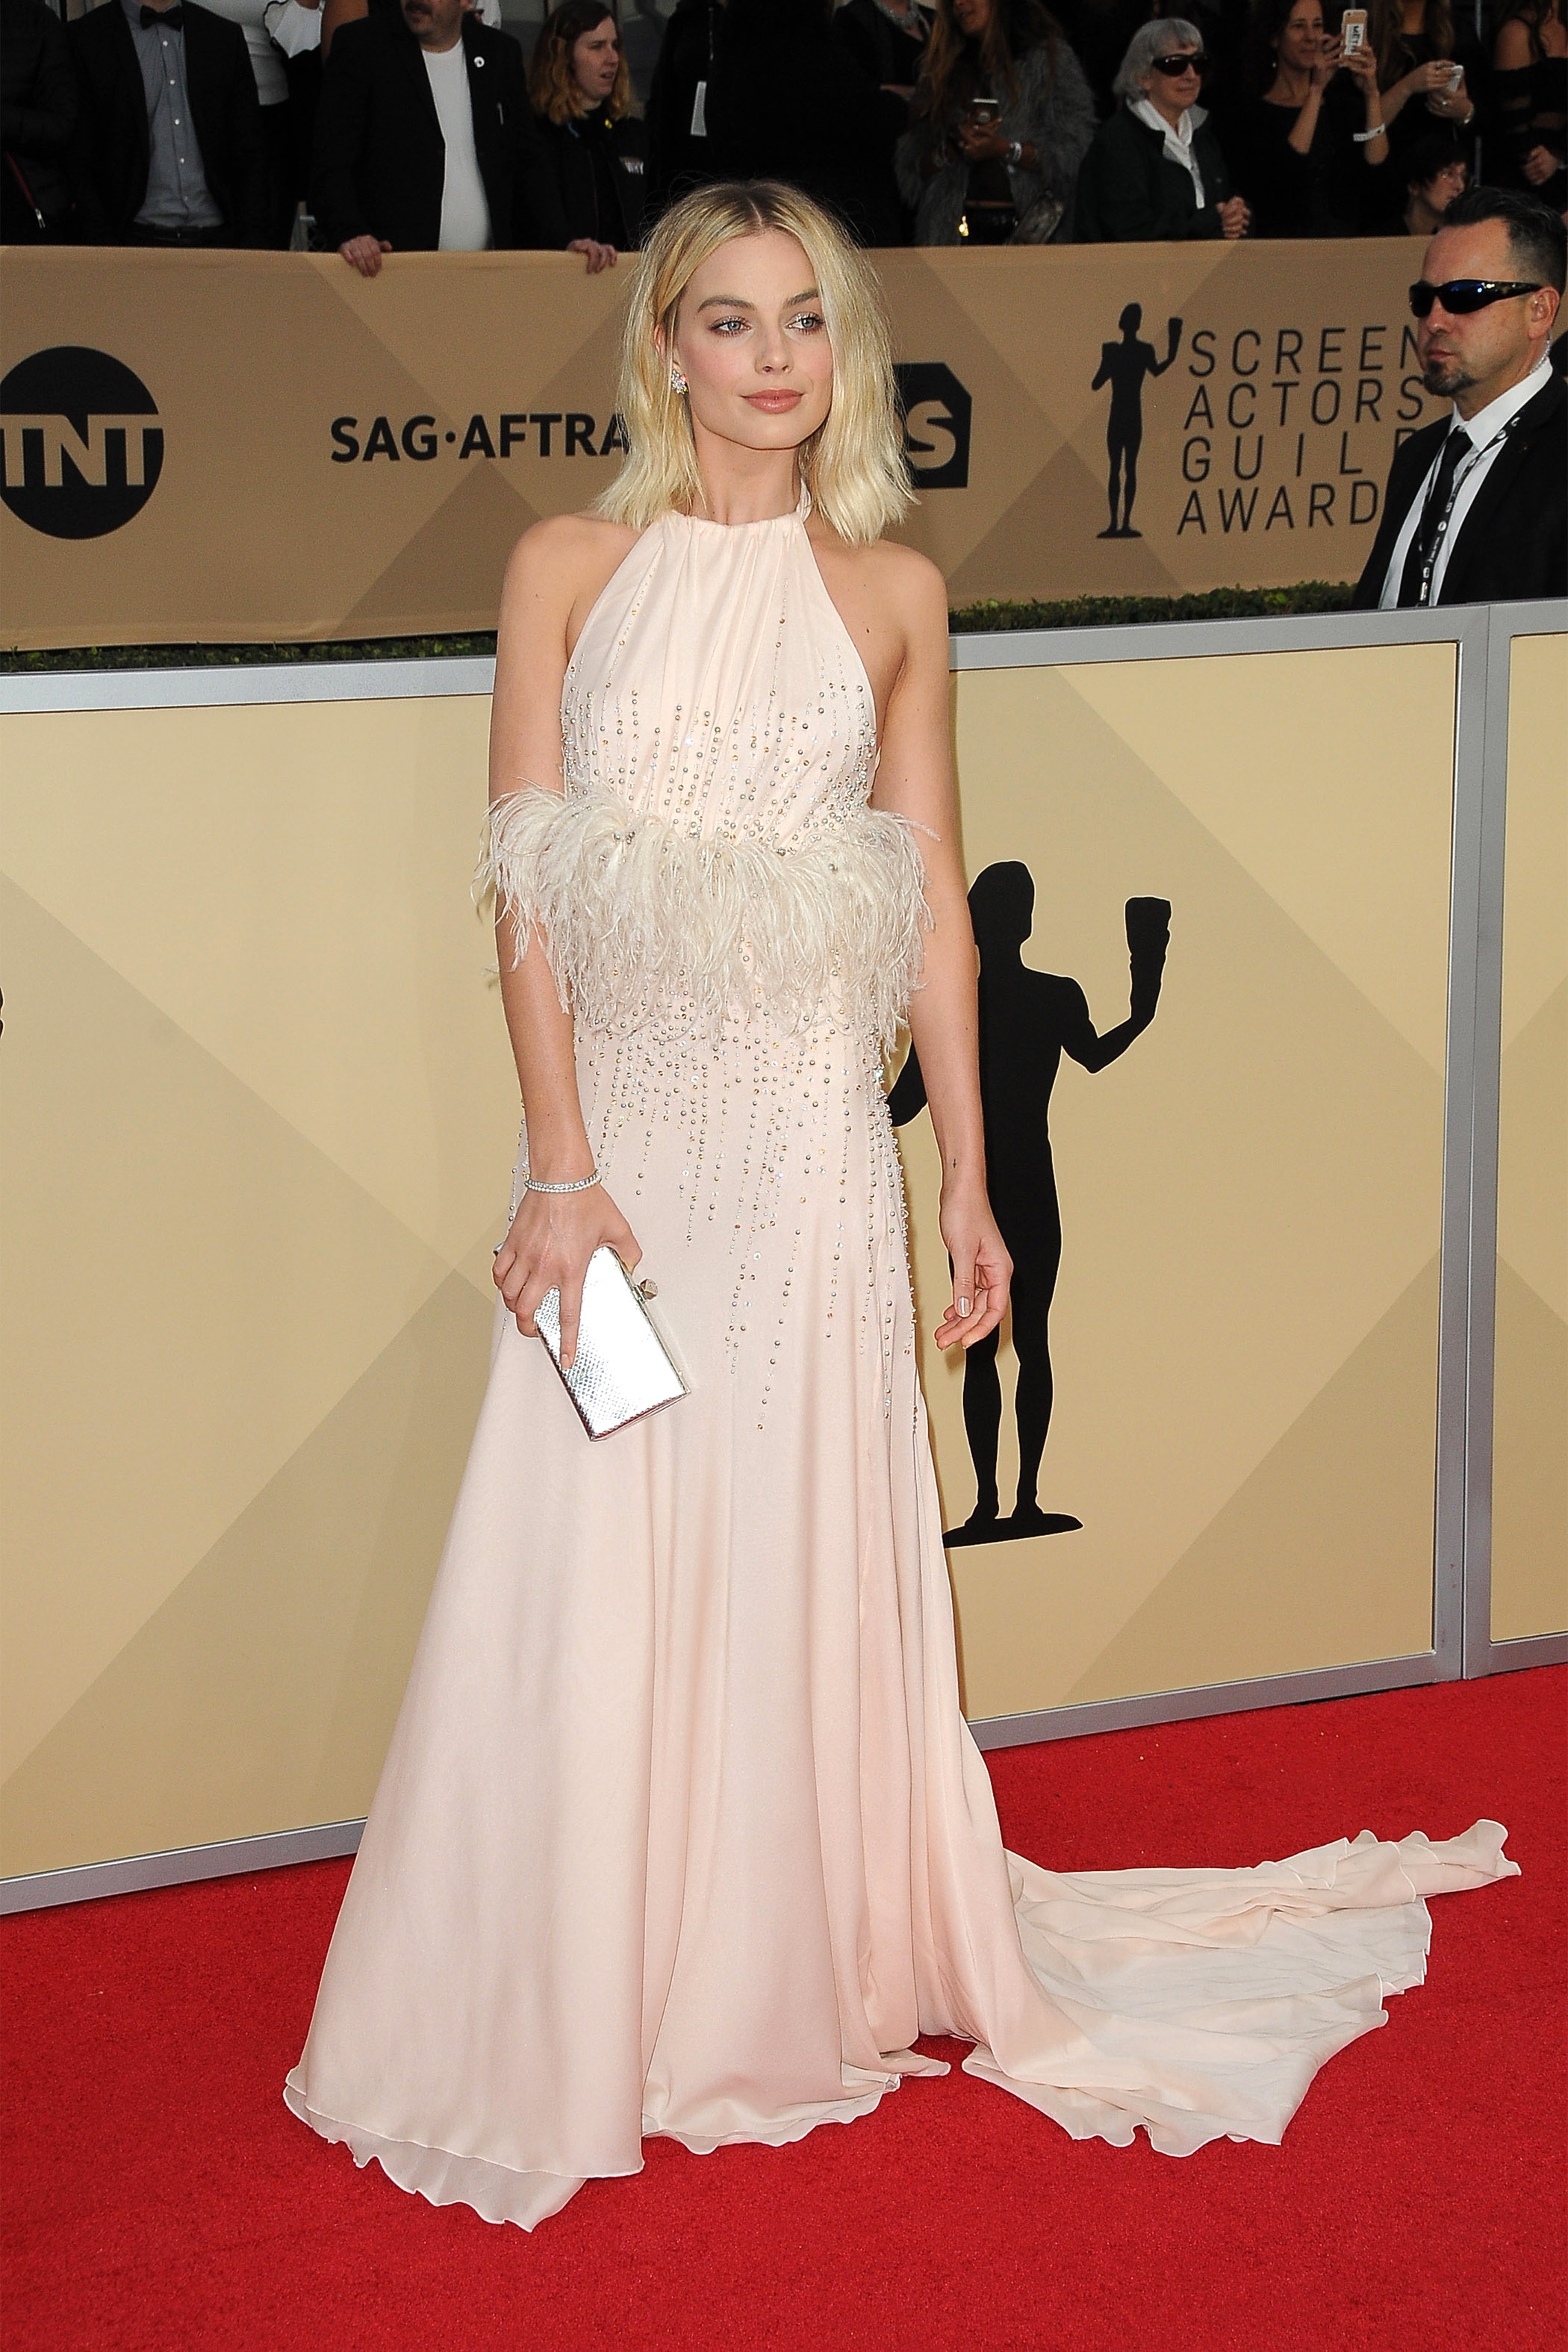 Arrivals for the 24th Annual Screen Actors Guild Awards, held at the Shrine Exposition Center in Los Angeles, California <P> Pictured: Margot Robbie <B>Ref: SPL1649120  210118  </B><BR/> Picture by: Splash News<BR/> </P><P> <B>Splash News and Pictures</B><BR/> Los Angeles:	310-821-2666<BR/> New York:	212-619-2666<BR/> London:	870-934-2666<BR/> <span id=